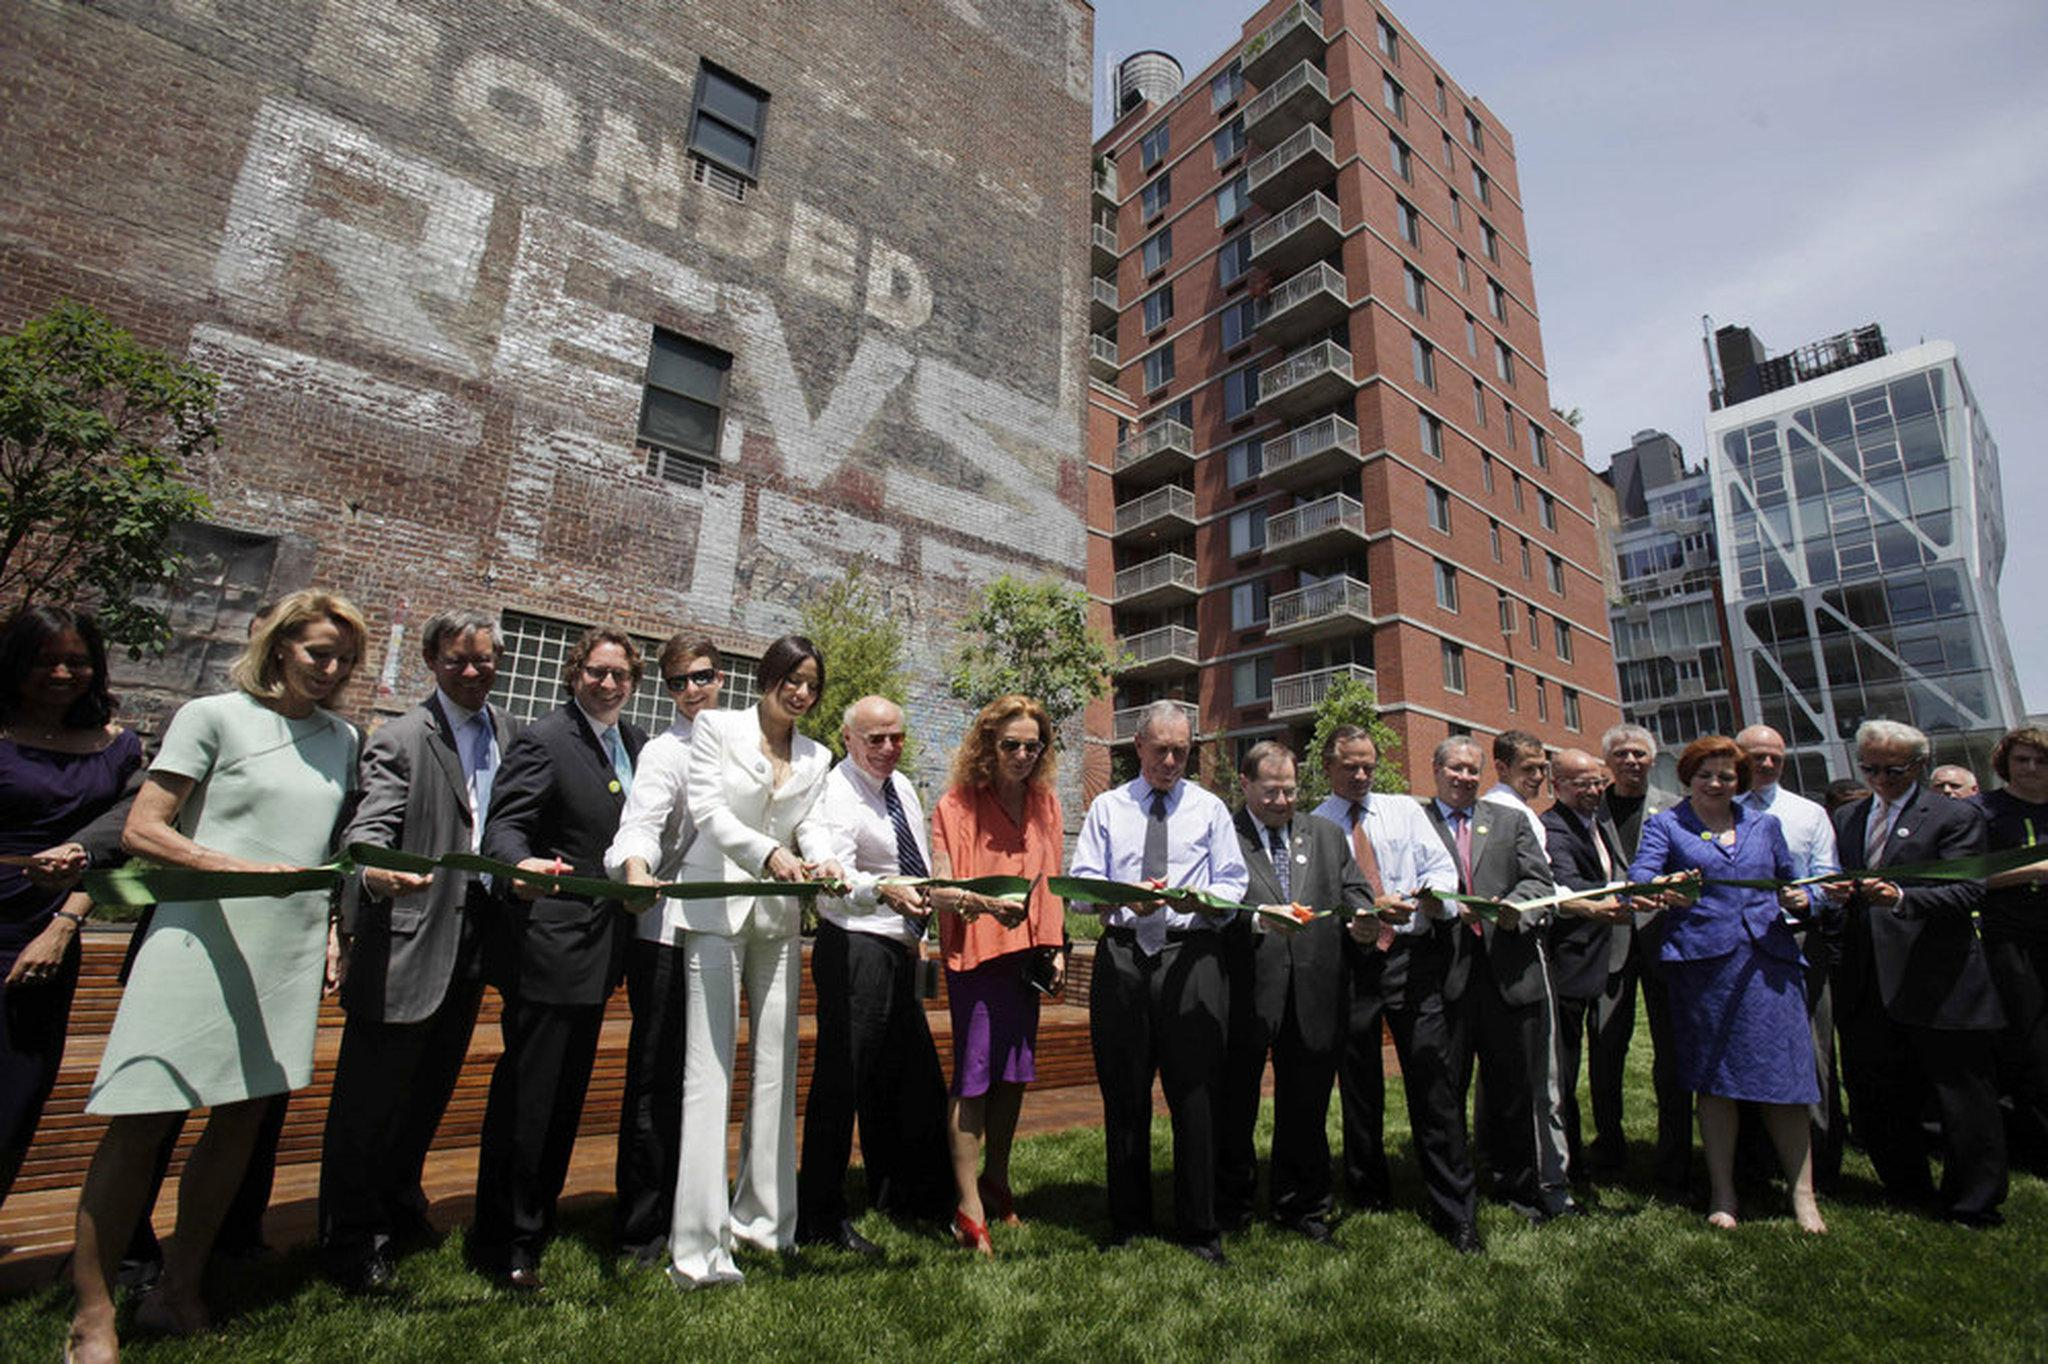 The High Line opening ceremony with mayor Bloomberg in the center